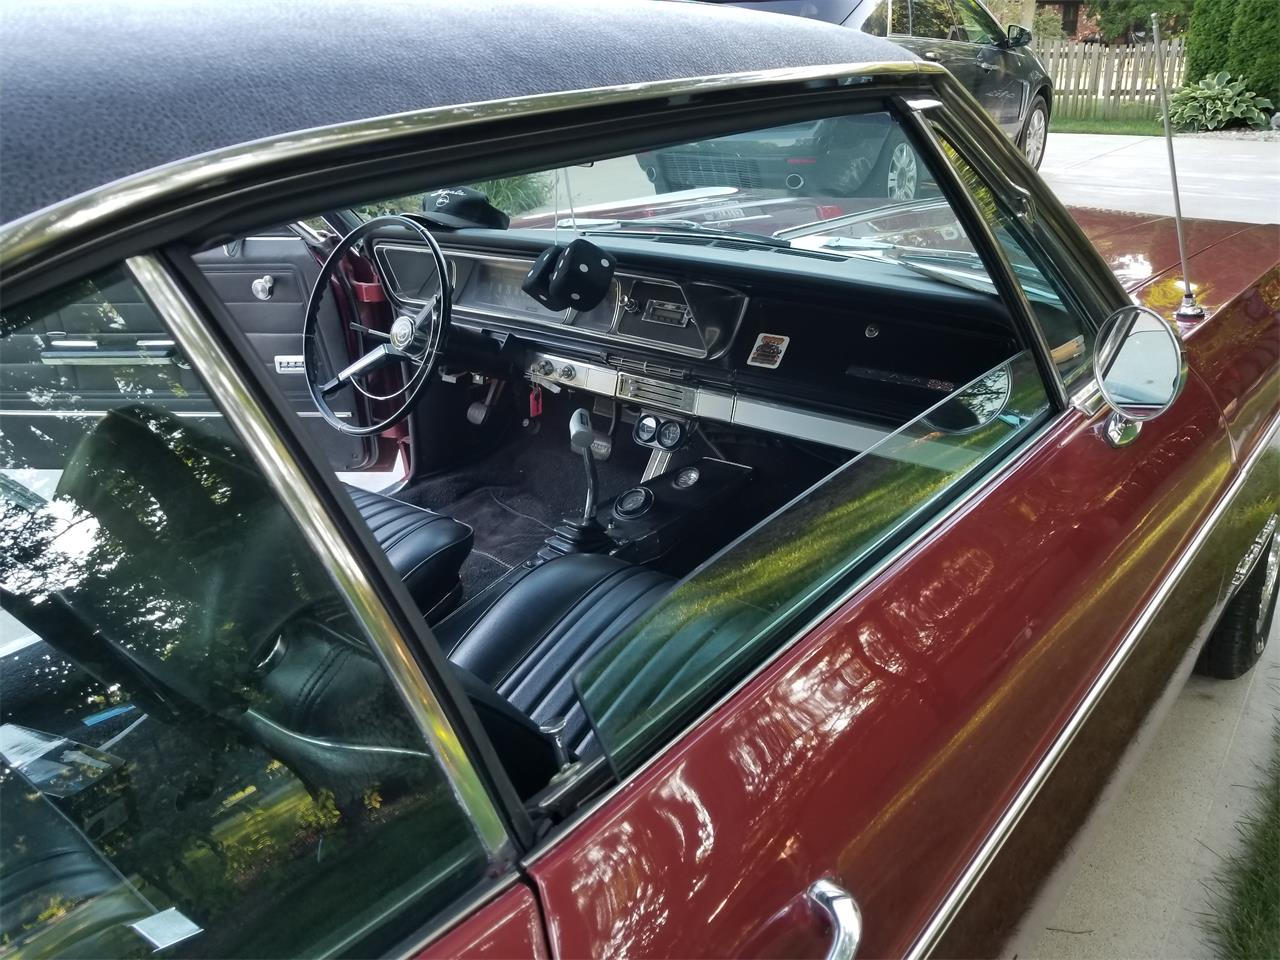 Large Picture of '66 Chevrolet Impala SS located in Carmel Indiana - $35,900.00 Offered by a Private Seller - LVHH